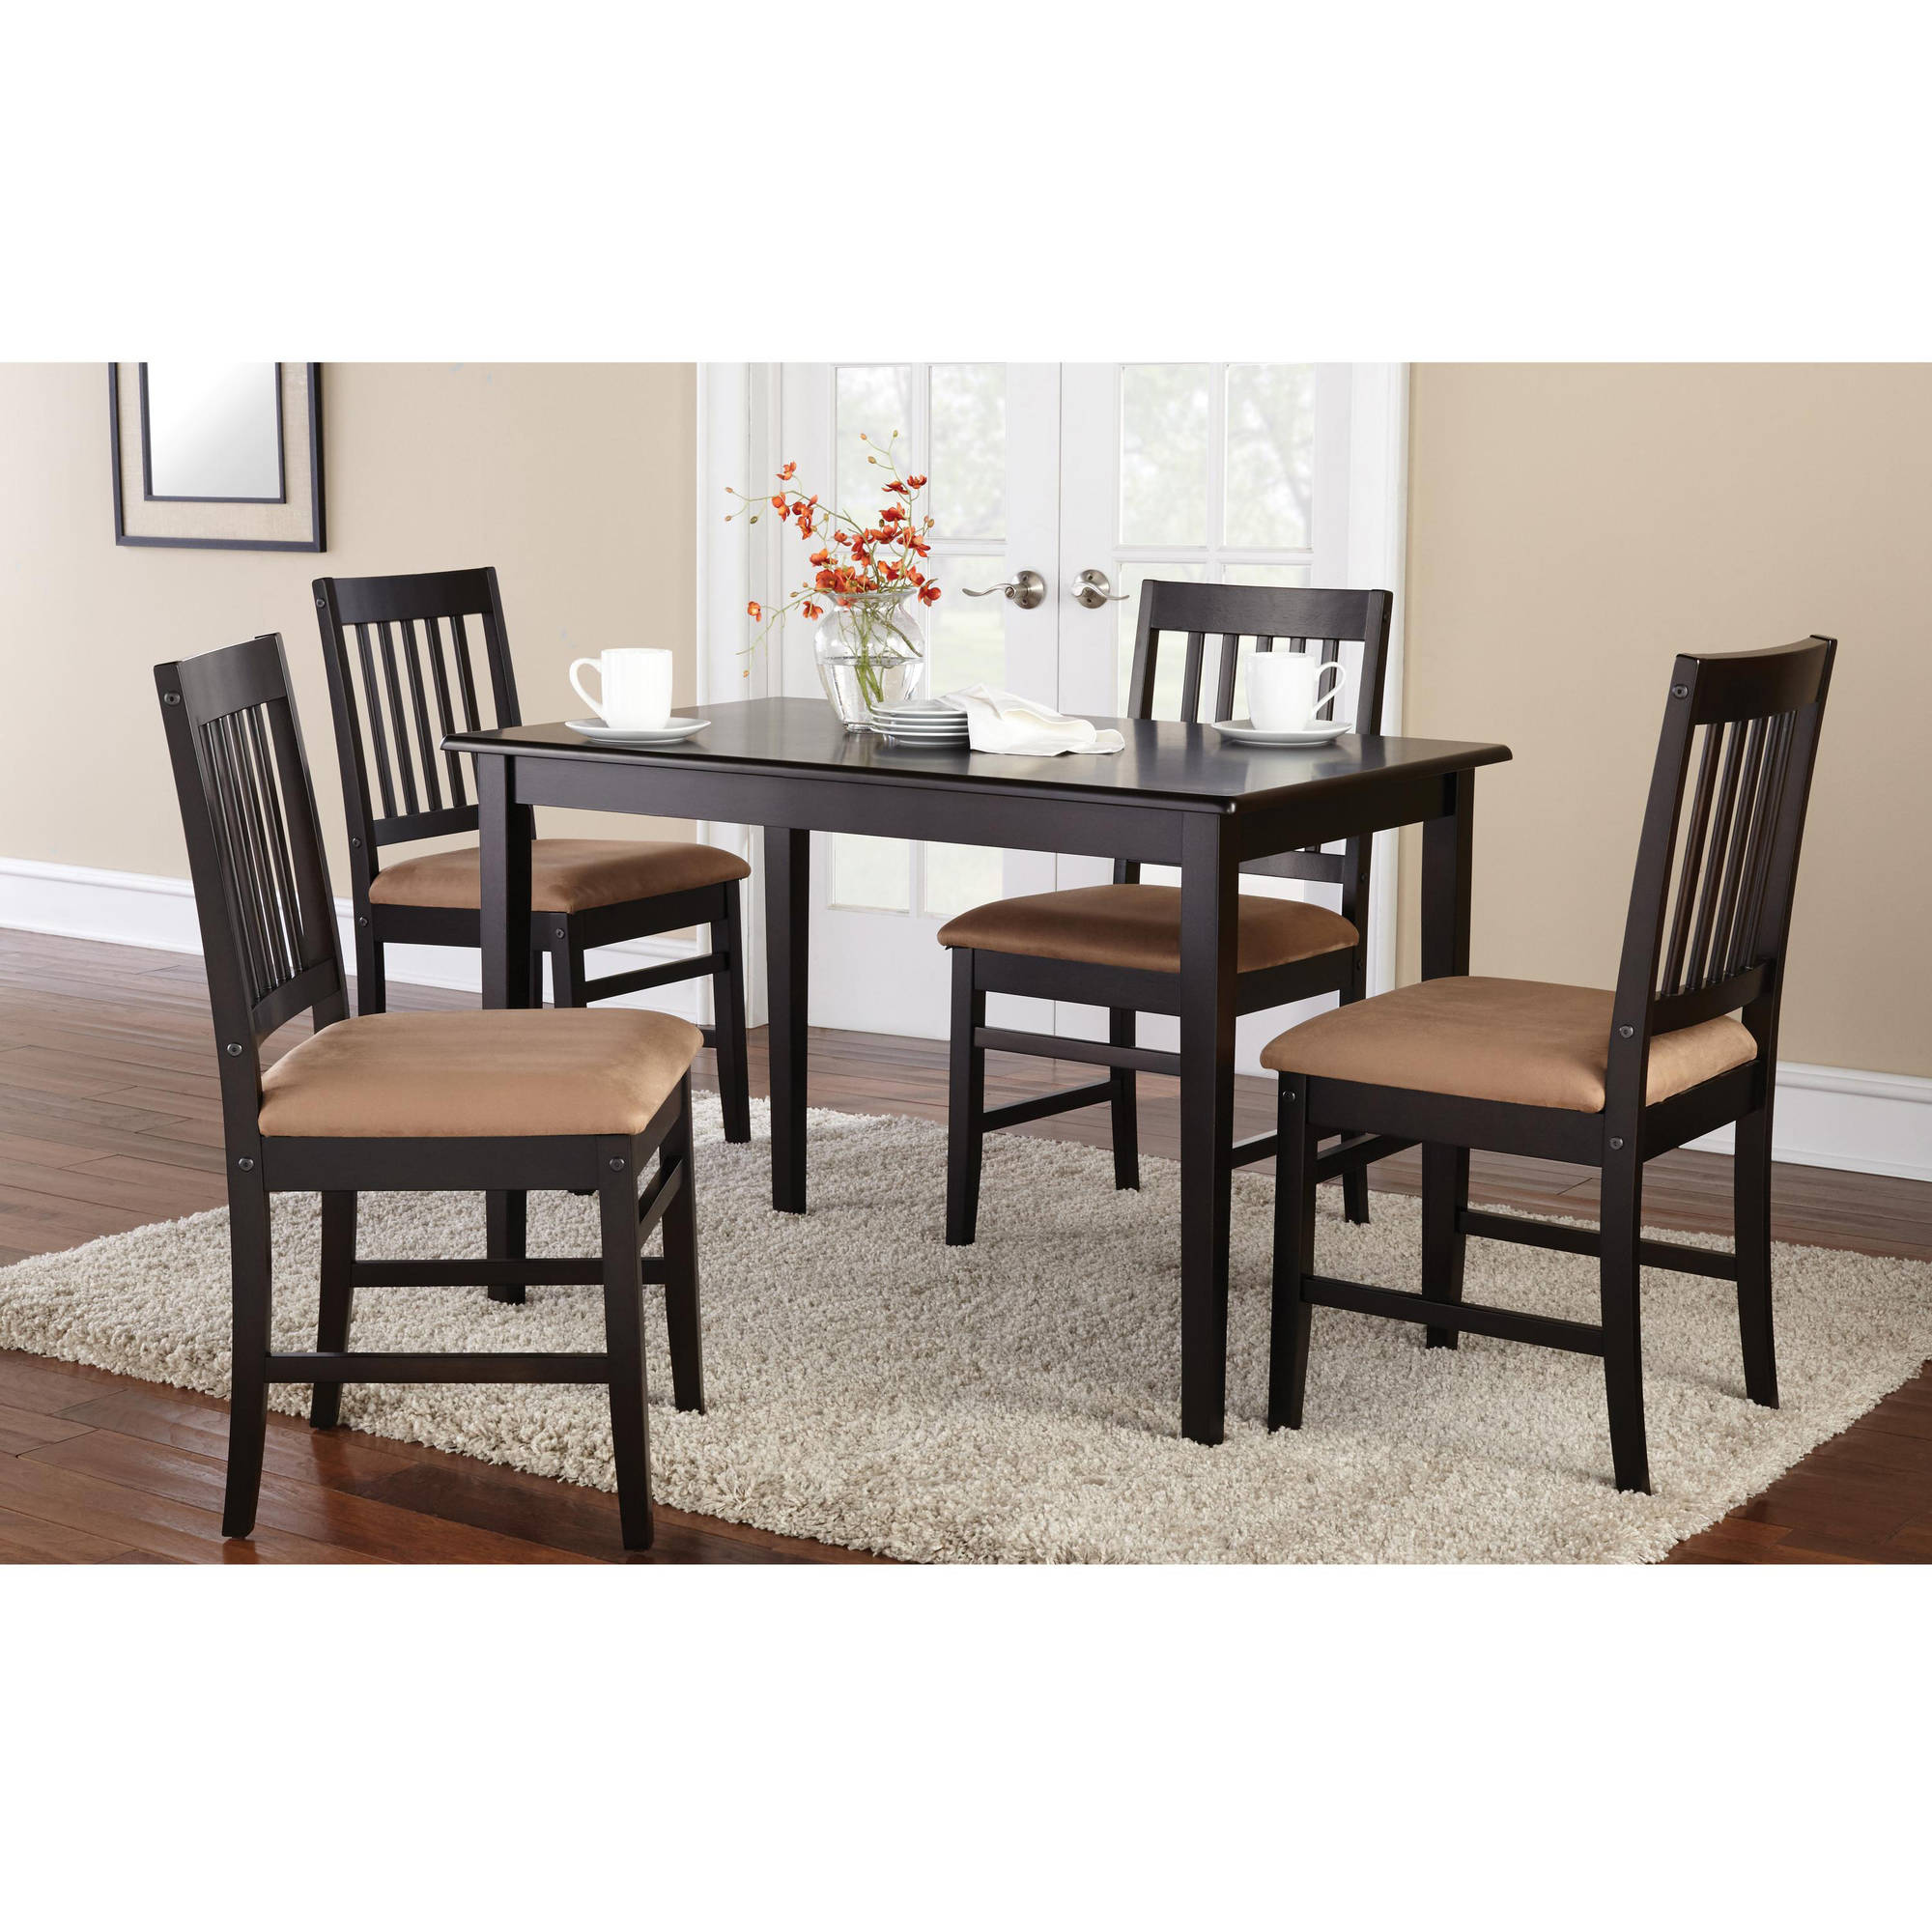 Mainstays 5-Piece Dining Set, Espresso